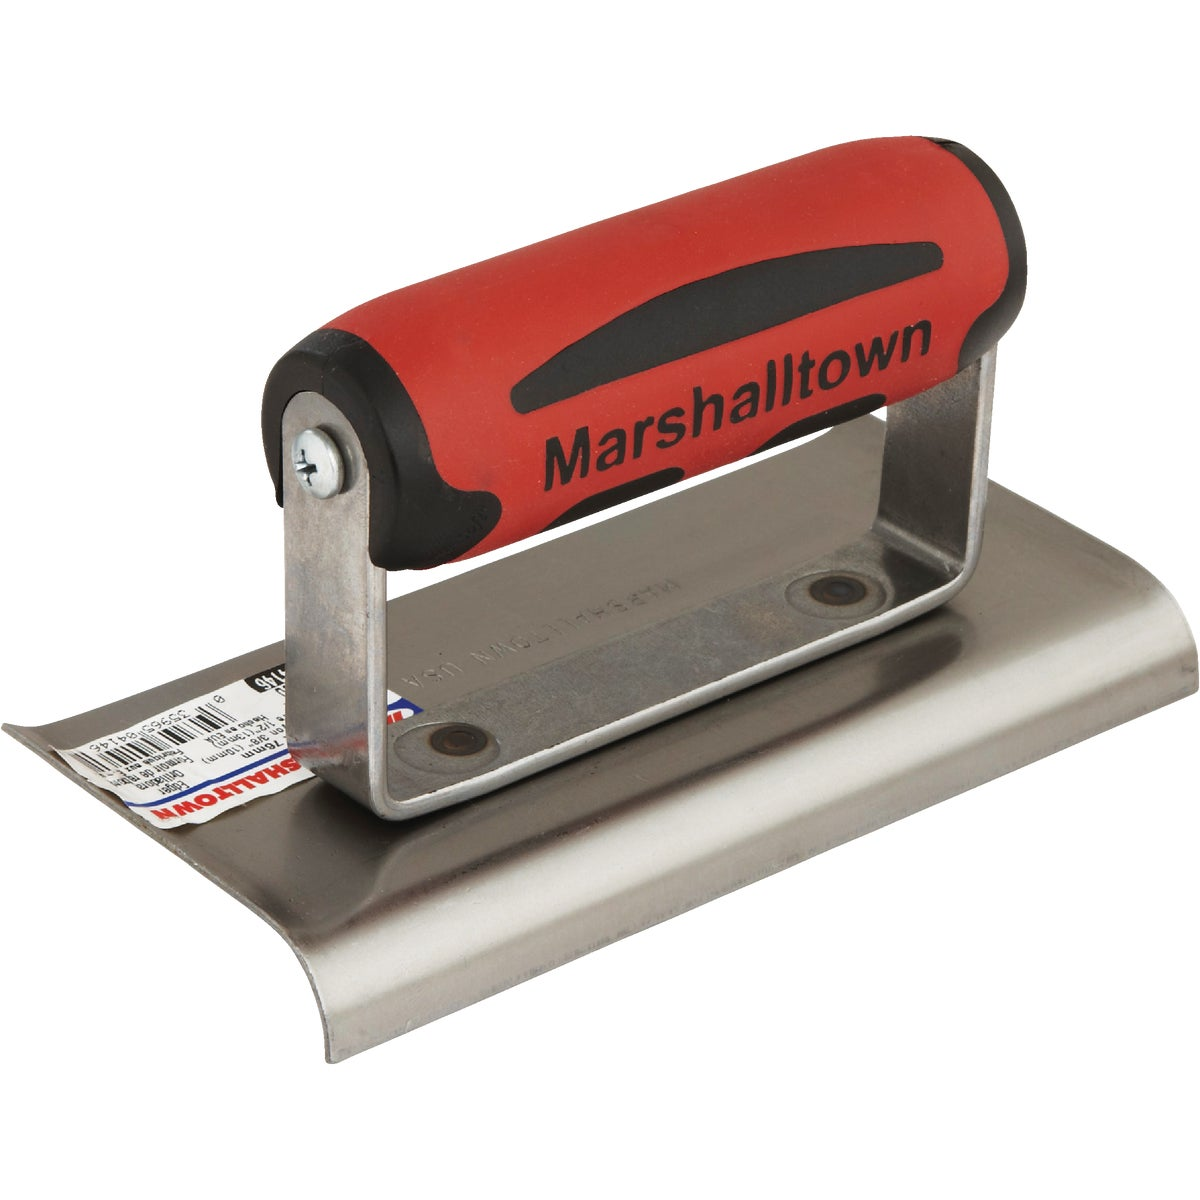 6X3 CURVED END EDGER - 14146 by Marshalltown Trowel